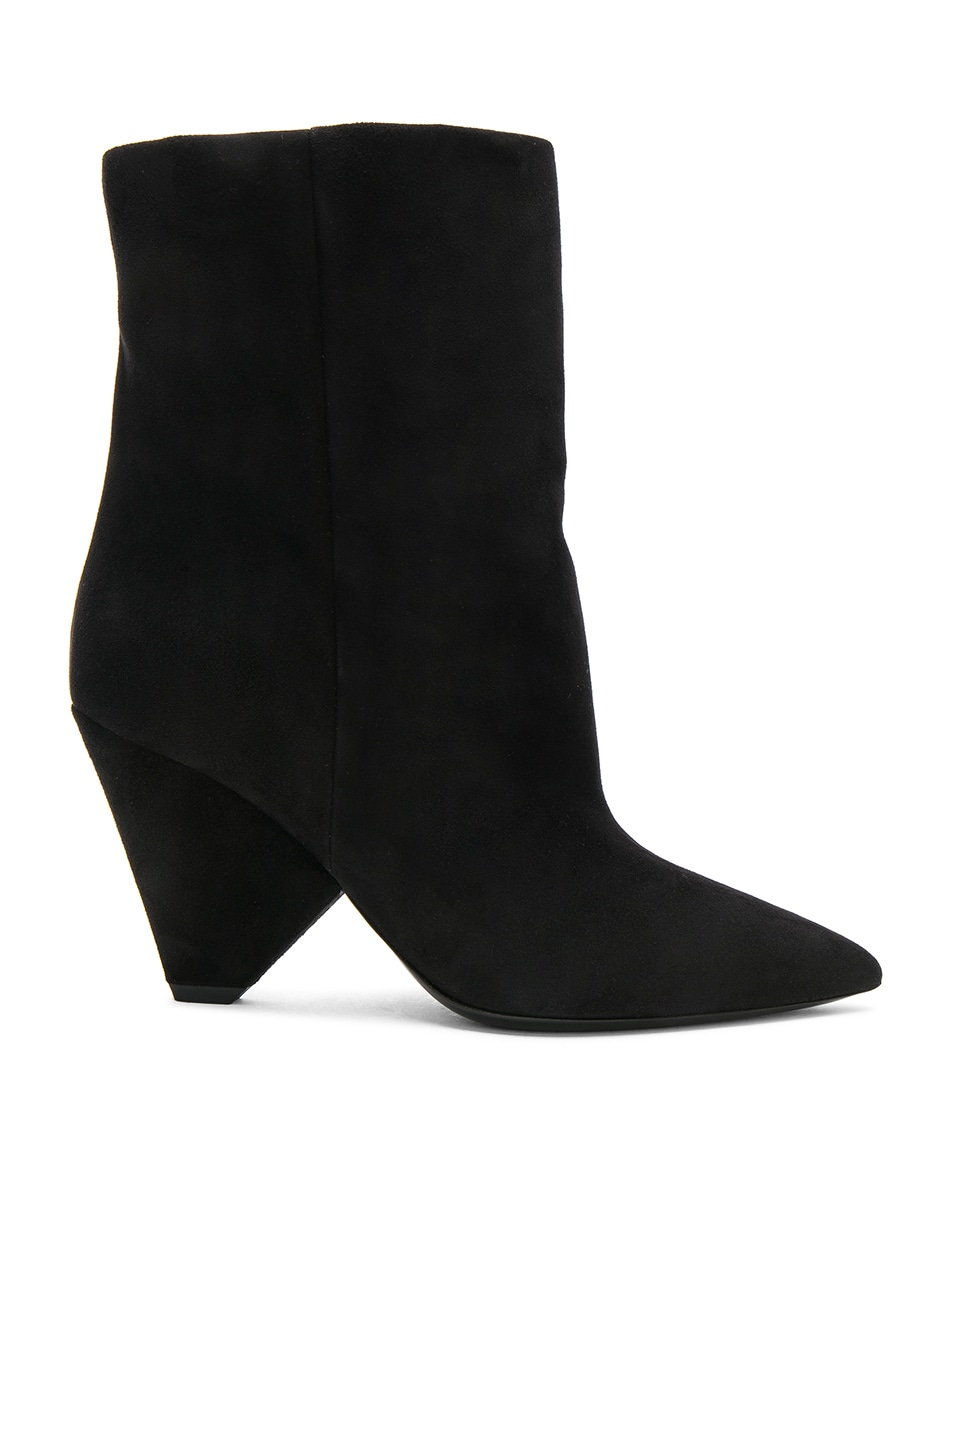 Image 1 of Saint Laurent Suede Niki Ankle Boots in Black